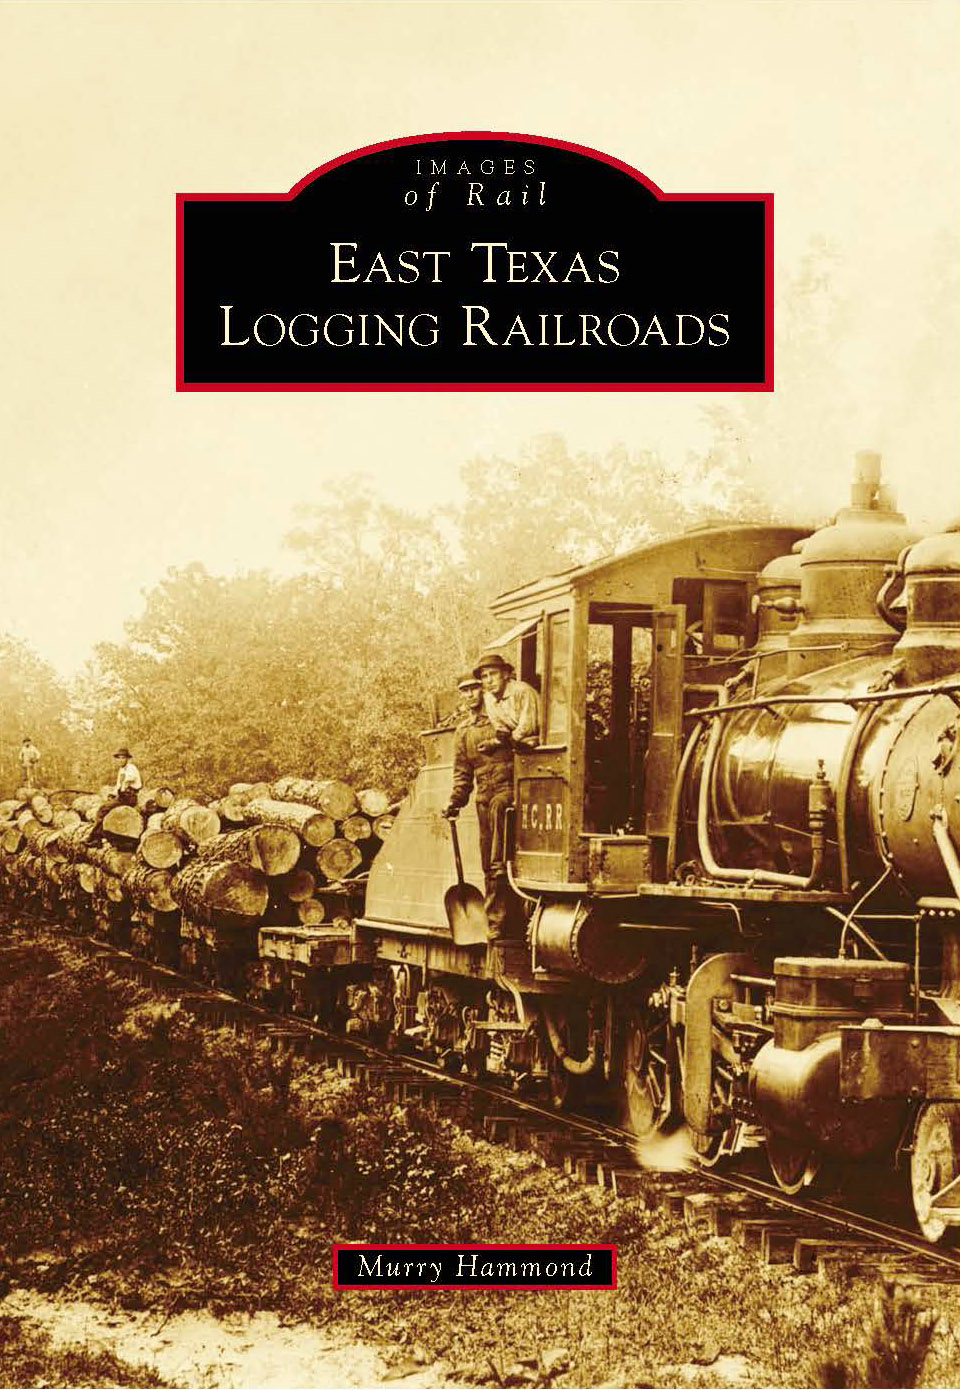 East Texas Logging Railroads